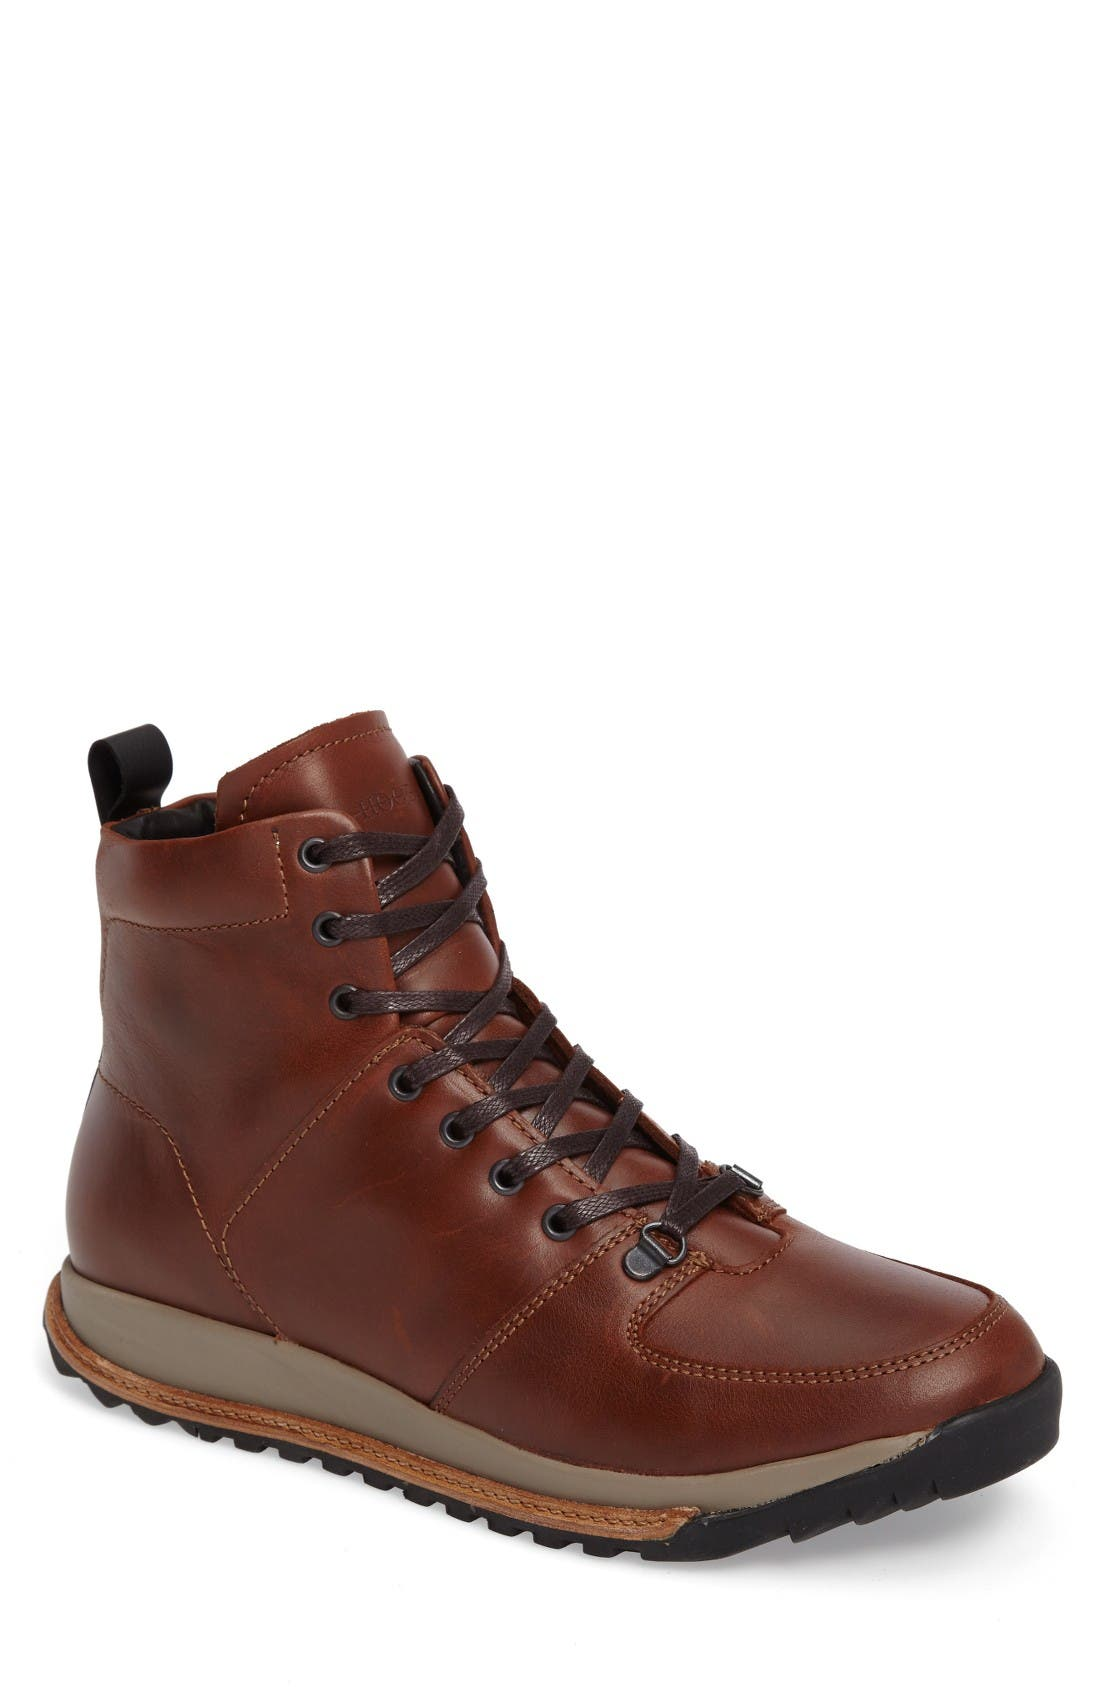 Concord Mid Top Wool Cuffed Waterproof Boot,                             Main thumbnail 1, color,                             Seahorse Leather